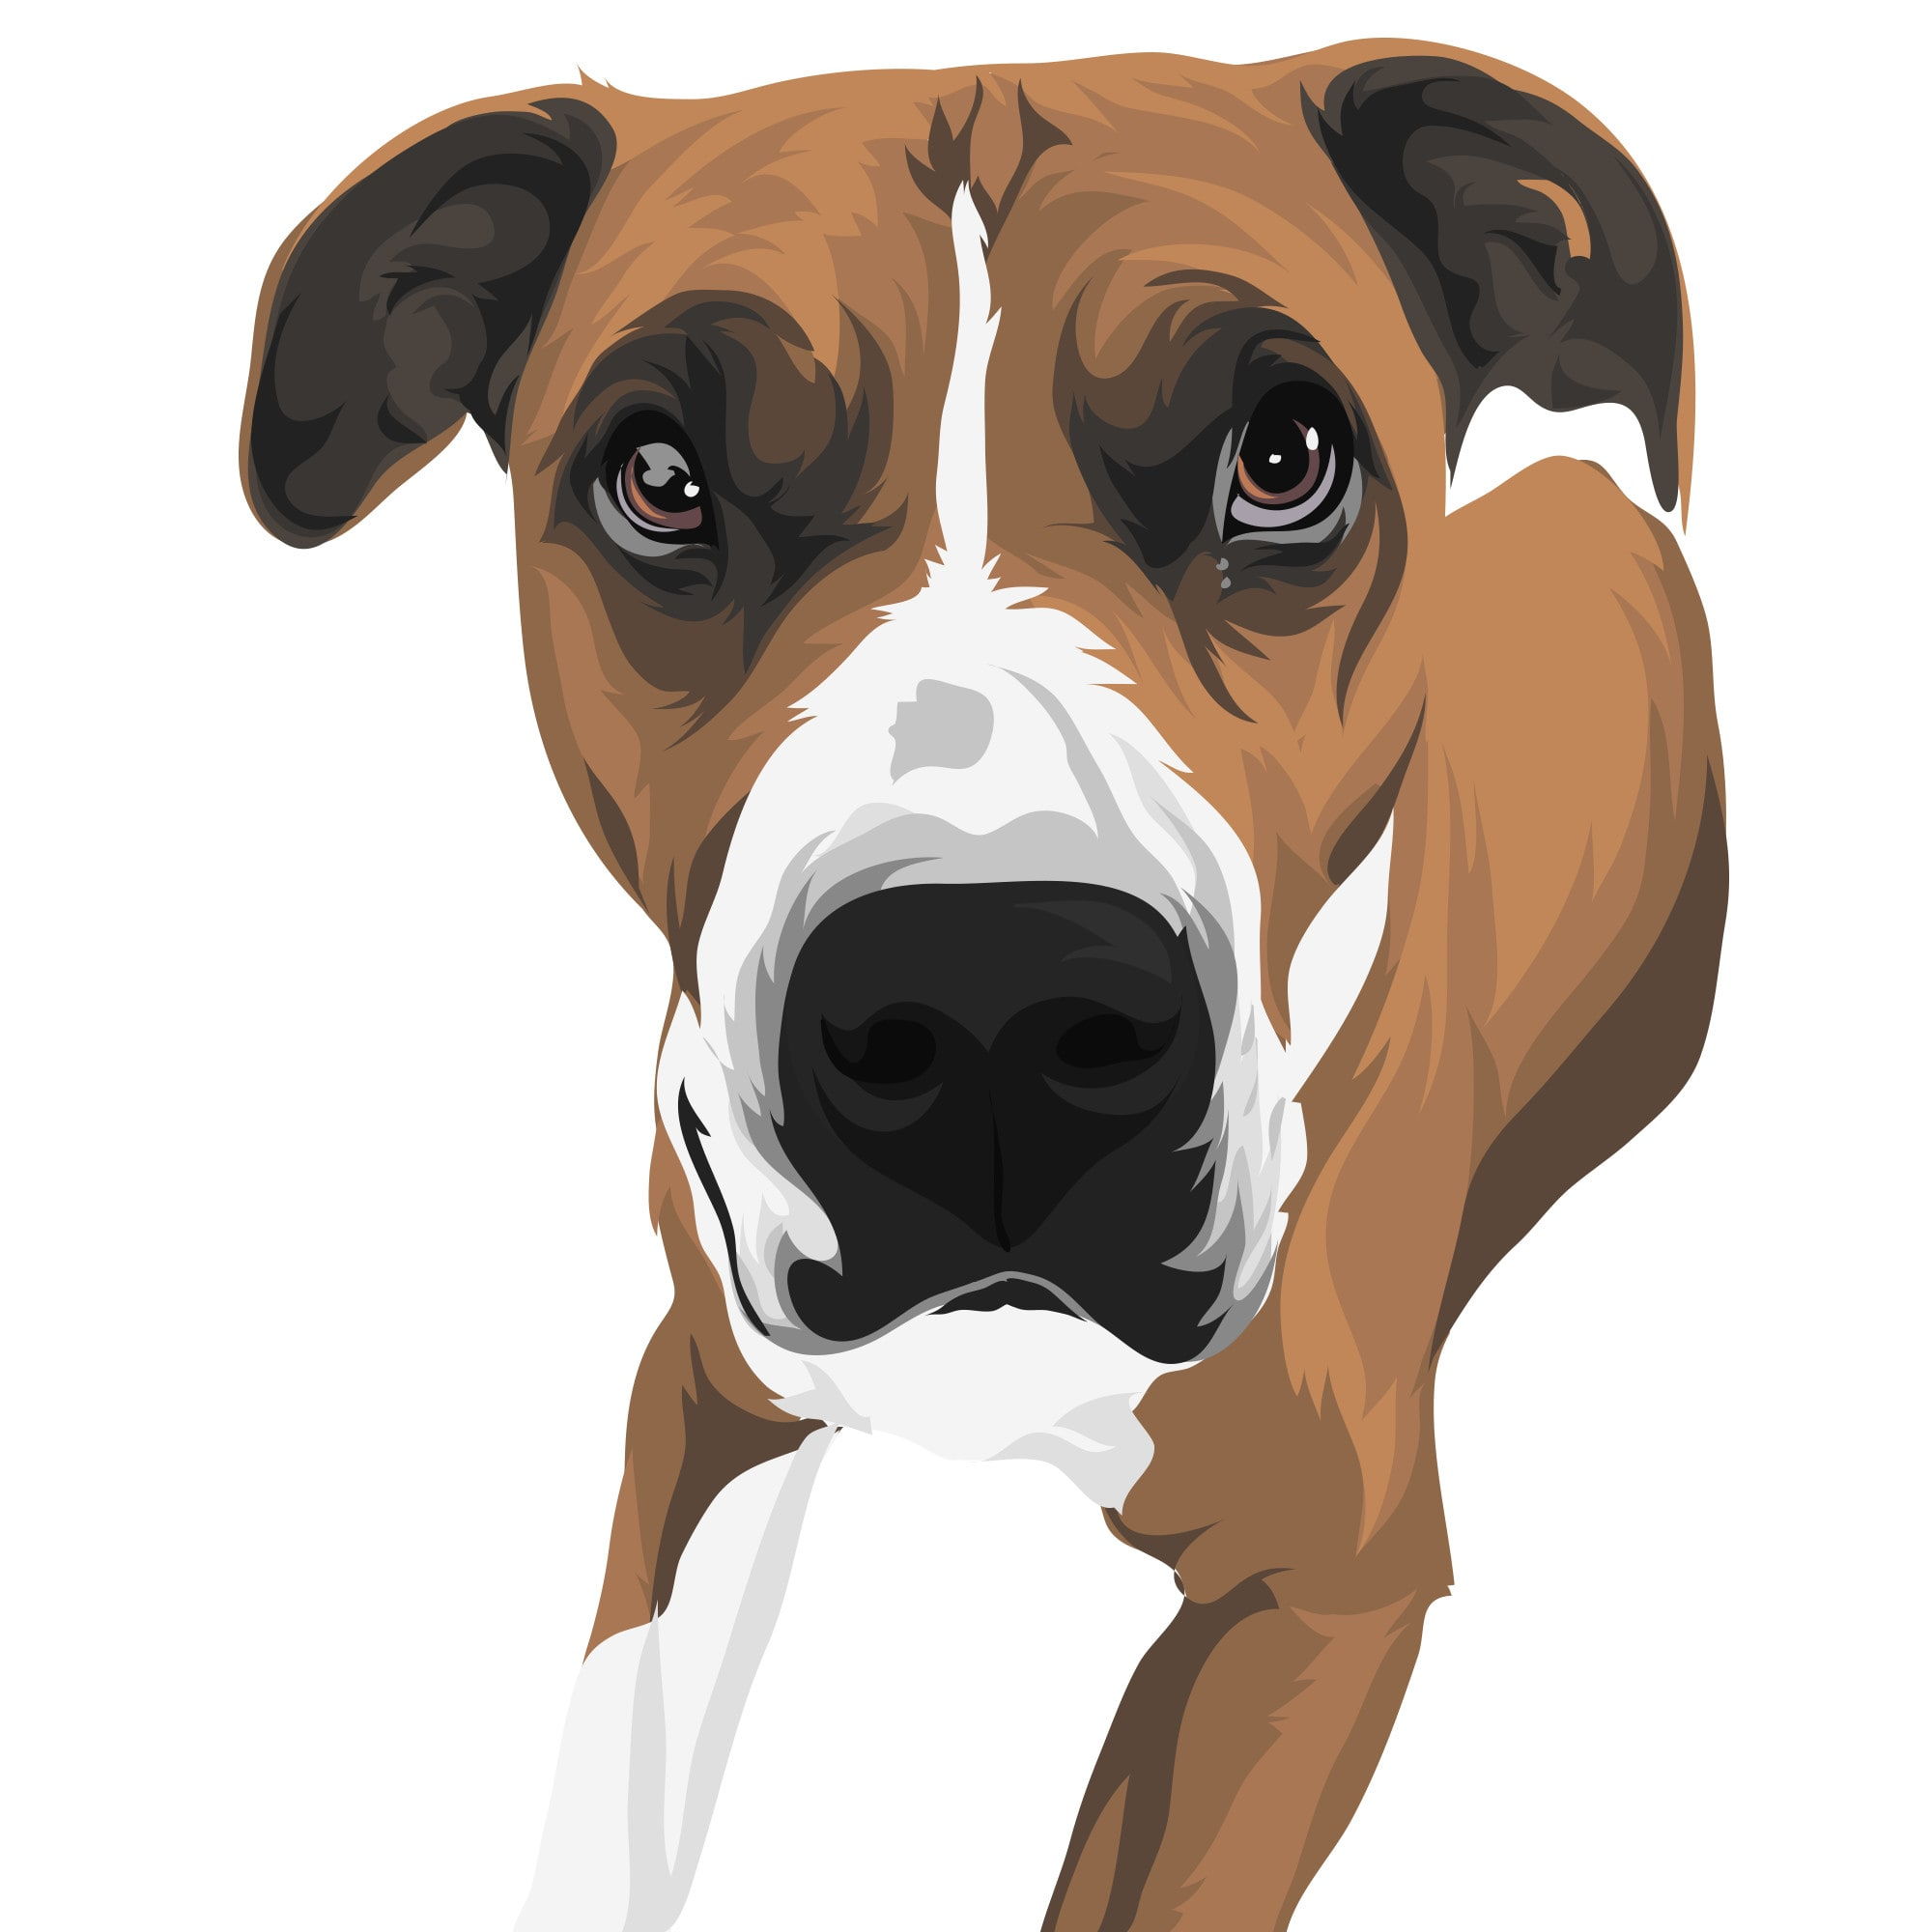 Turn Your Pet Into Cartoon Or Vector Within 1 To 2 Hours By Melocabral